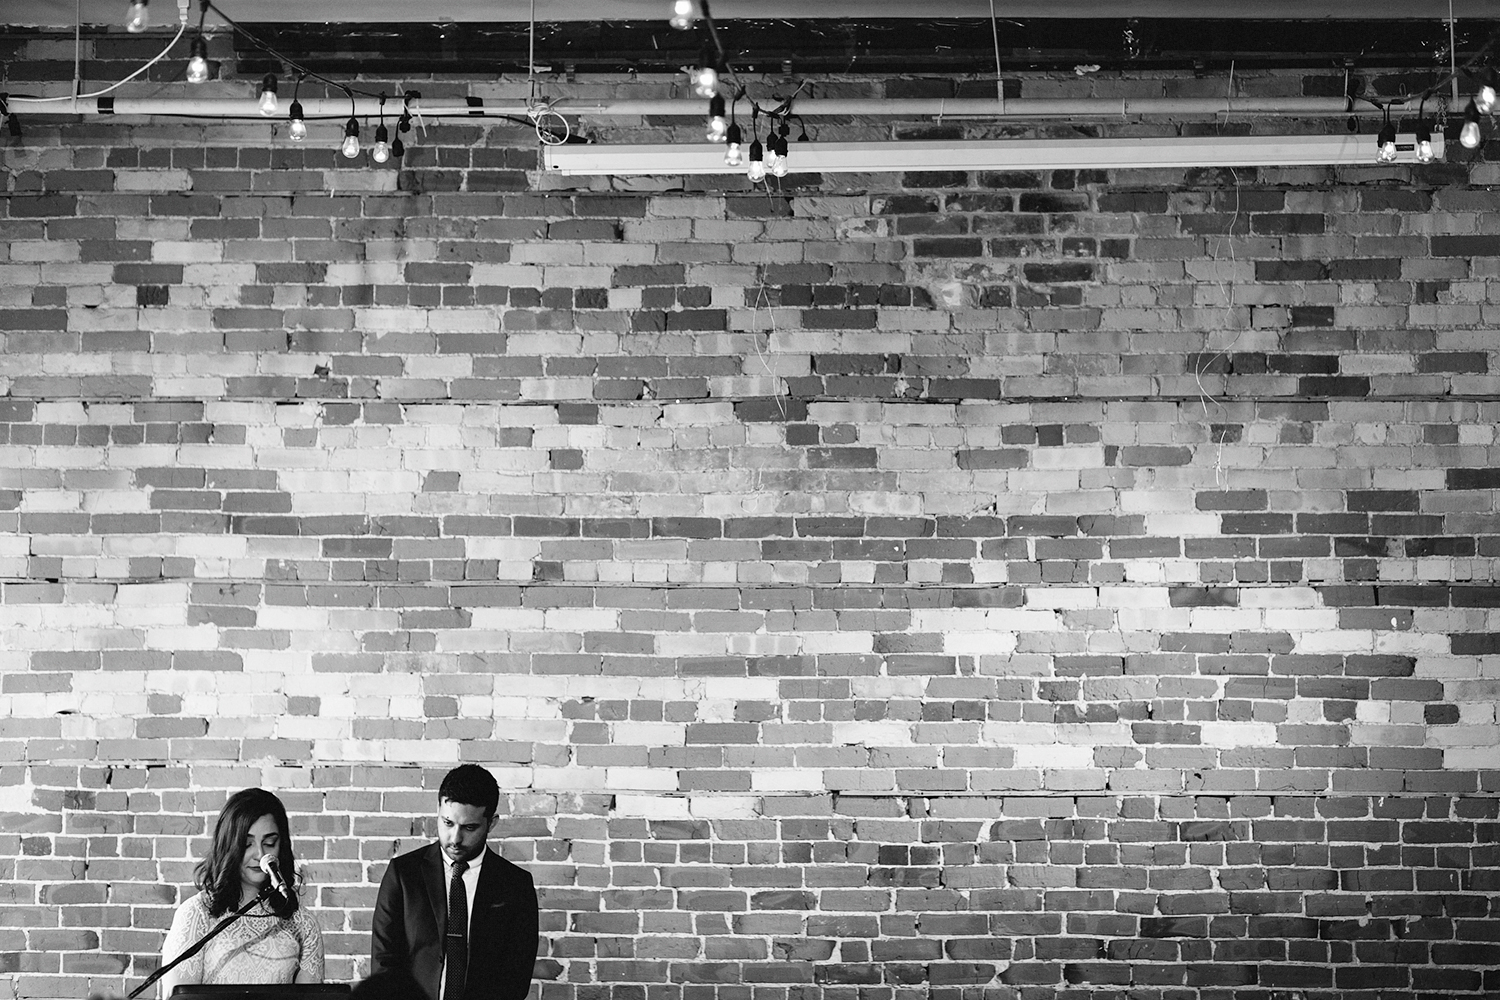 Best-Analog-Film-Wedding-Photographers-Toronto-Downtown-Urban-Gladstone-Hotel-Venue-Inspiration-Top-Venues-in-Toronto-boutique-hotel-candid-documentary-brunch-ceremony-bride-and-groom-moments-together-bride-vows-emotional-cinematic-bw.jpg